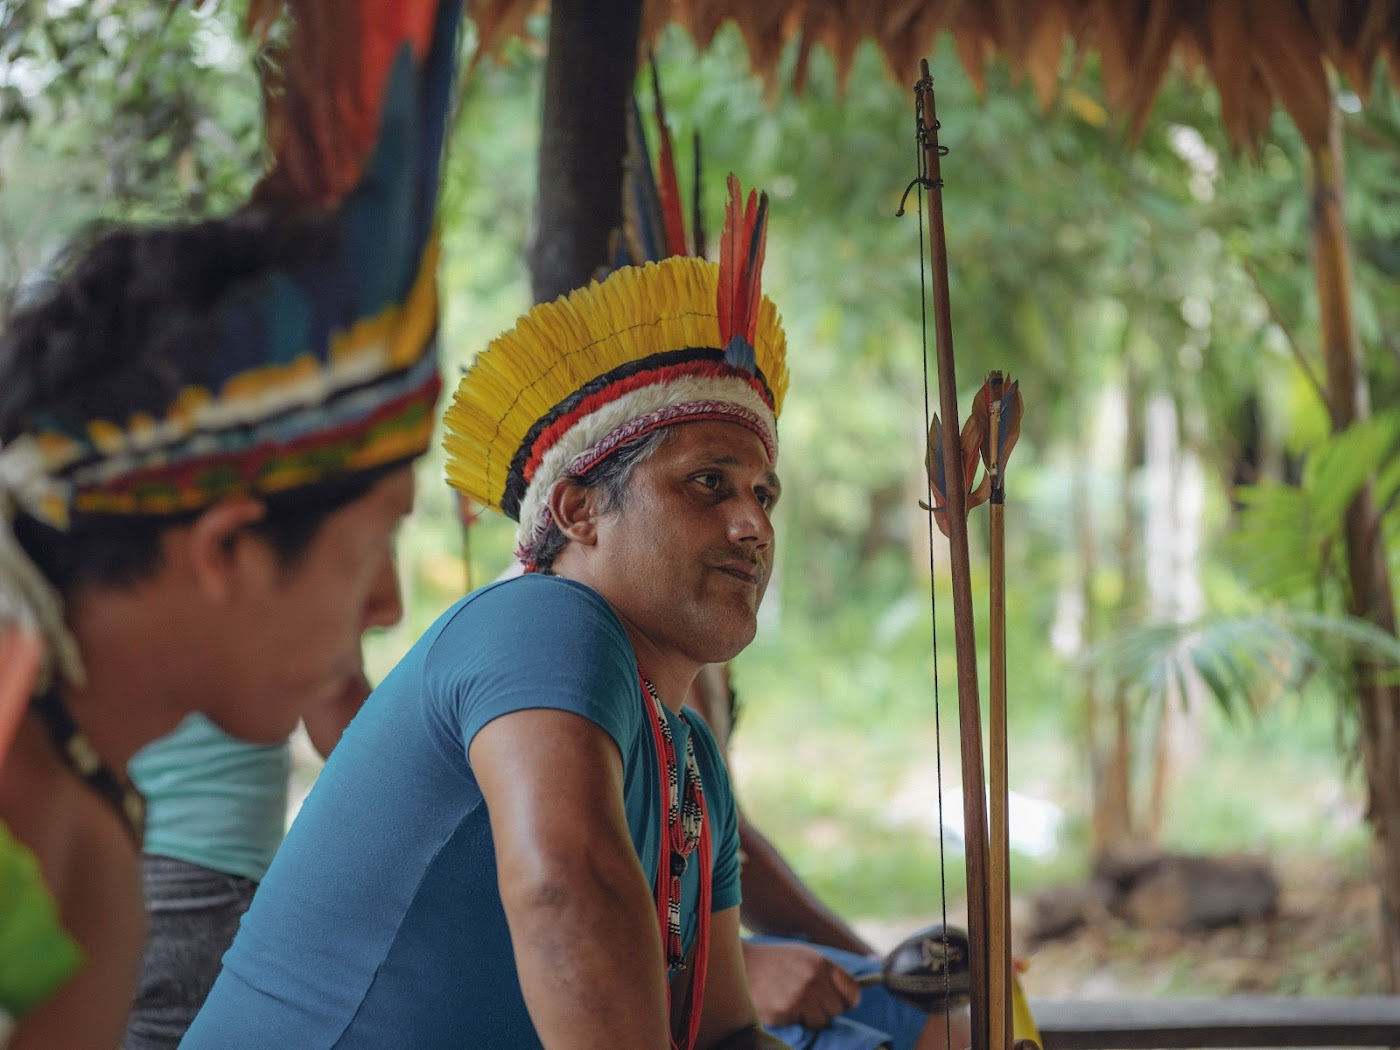 Chief Naldo Tembé used old mobiles to save rainforests of his region.